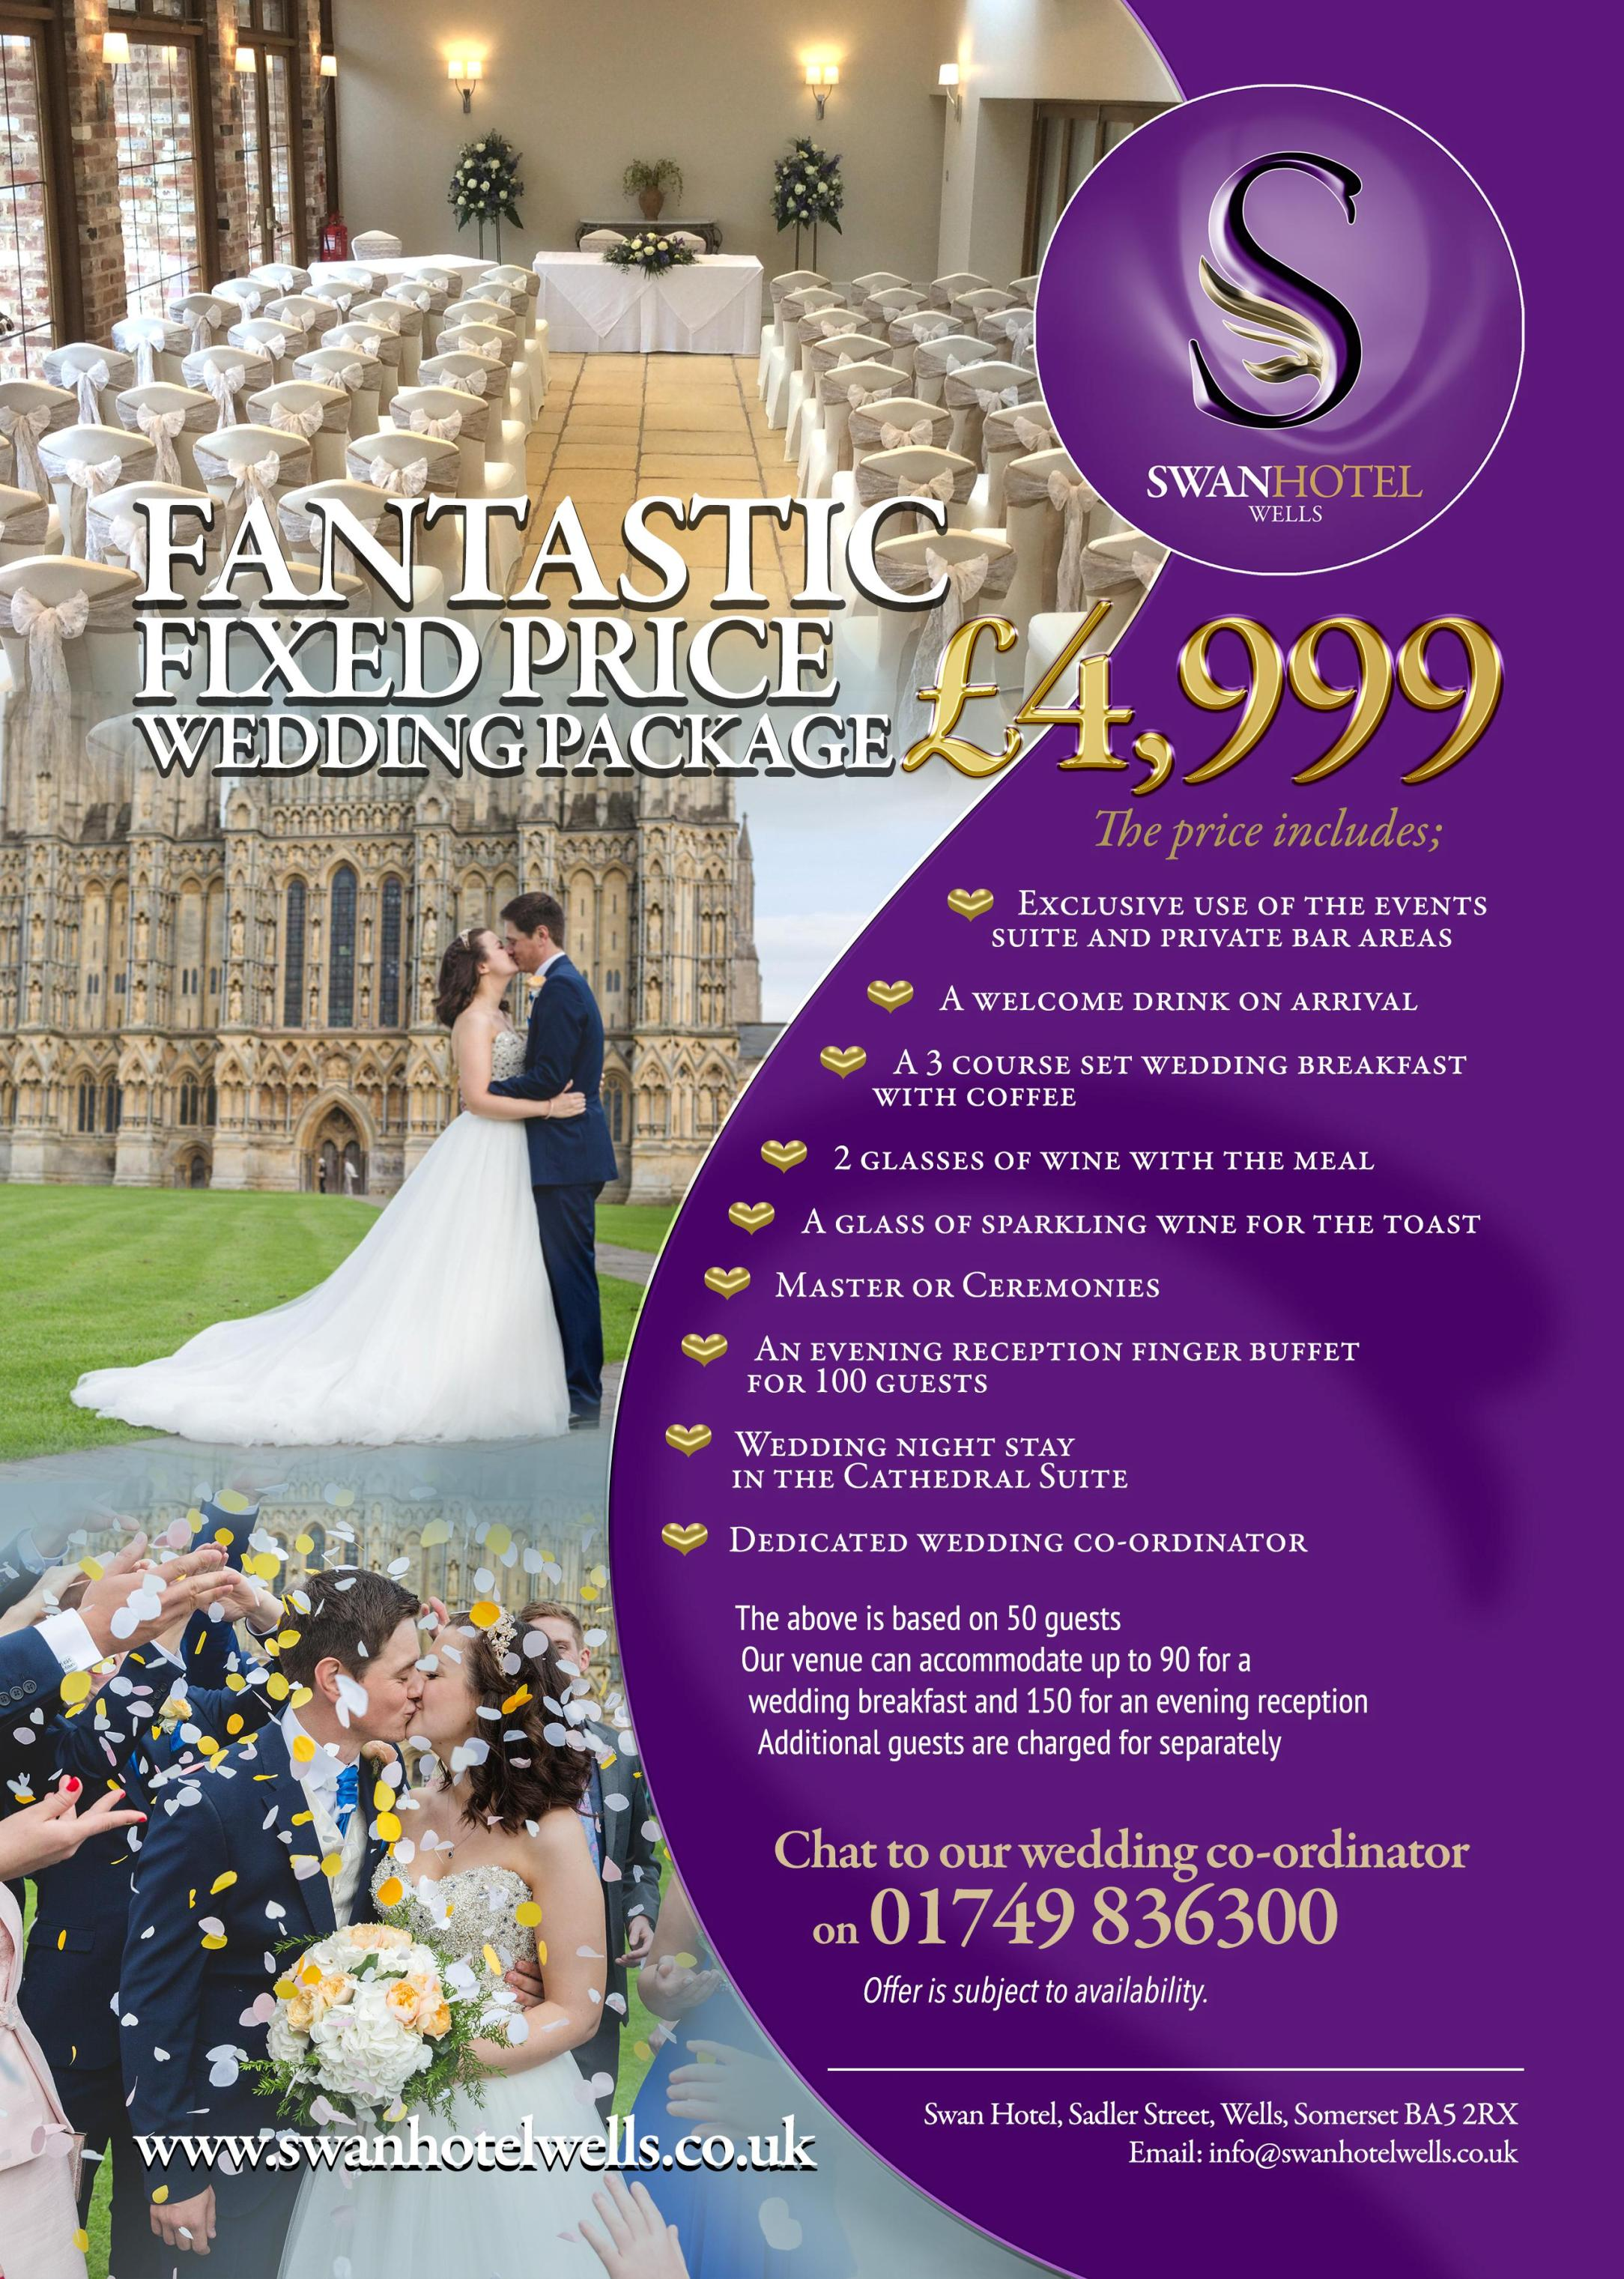 All inclusive wedding package £4,999 at The Swan Hotel Wells